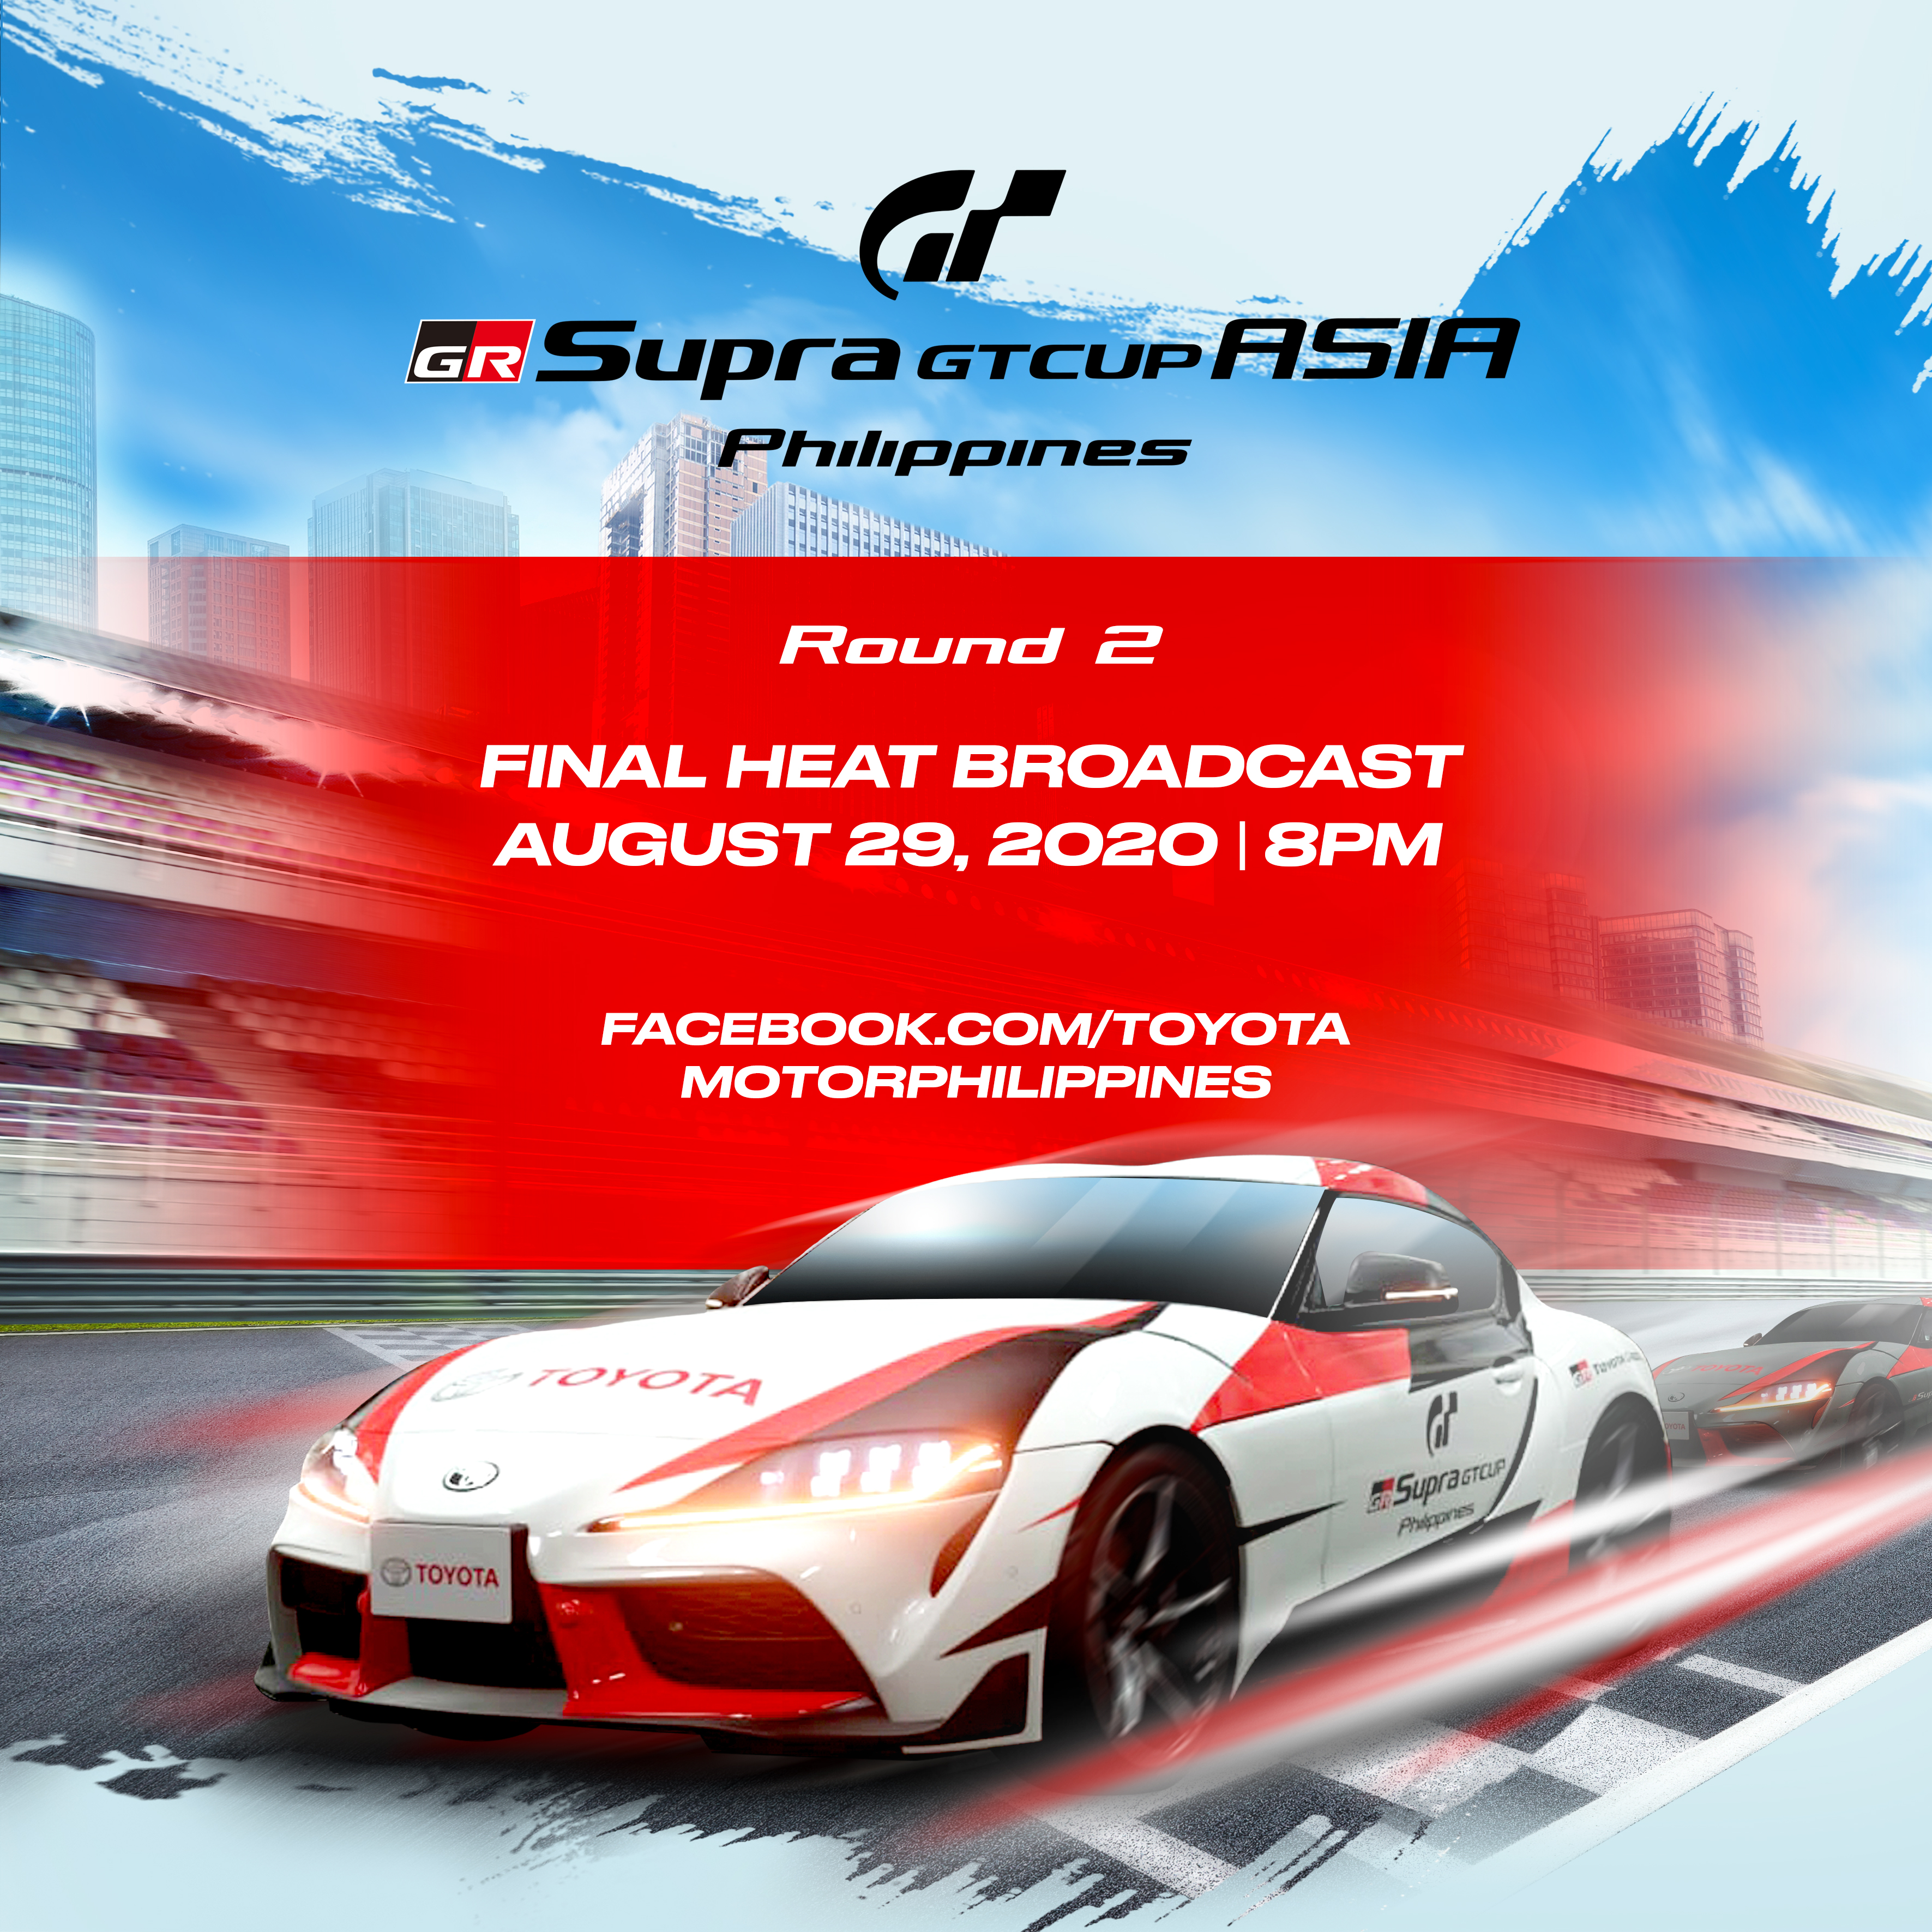 Watch the second round of GR Supra GT Cup Asia - Philippines this August 29